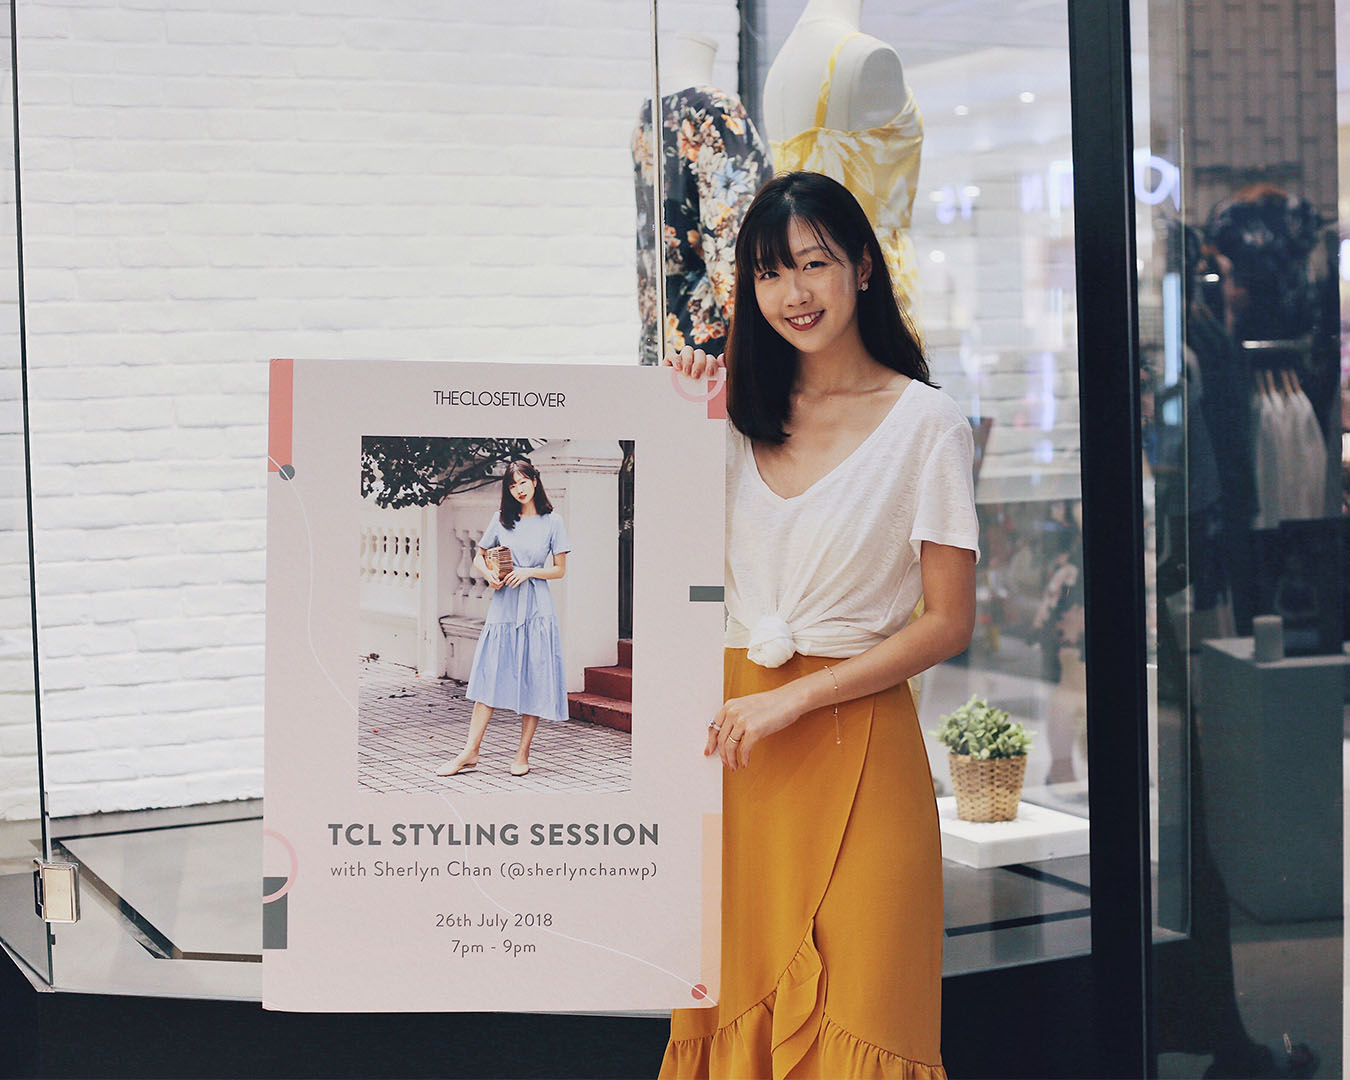 A Stylish Night with Sherlyn Chan (@sherlynchanwp)